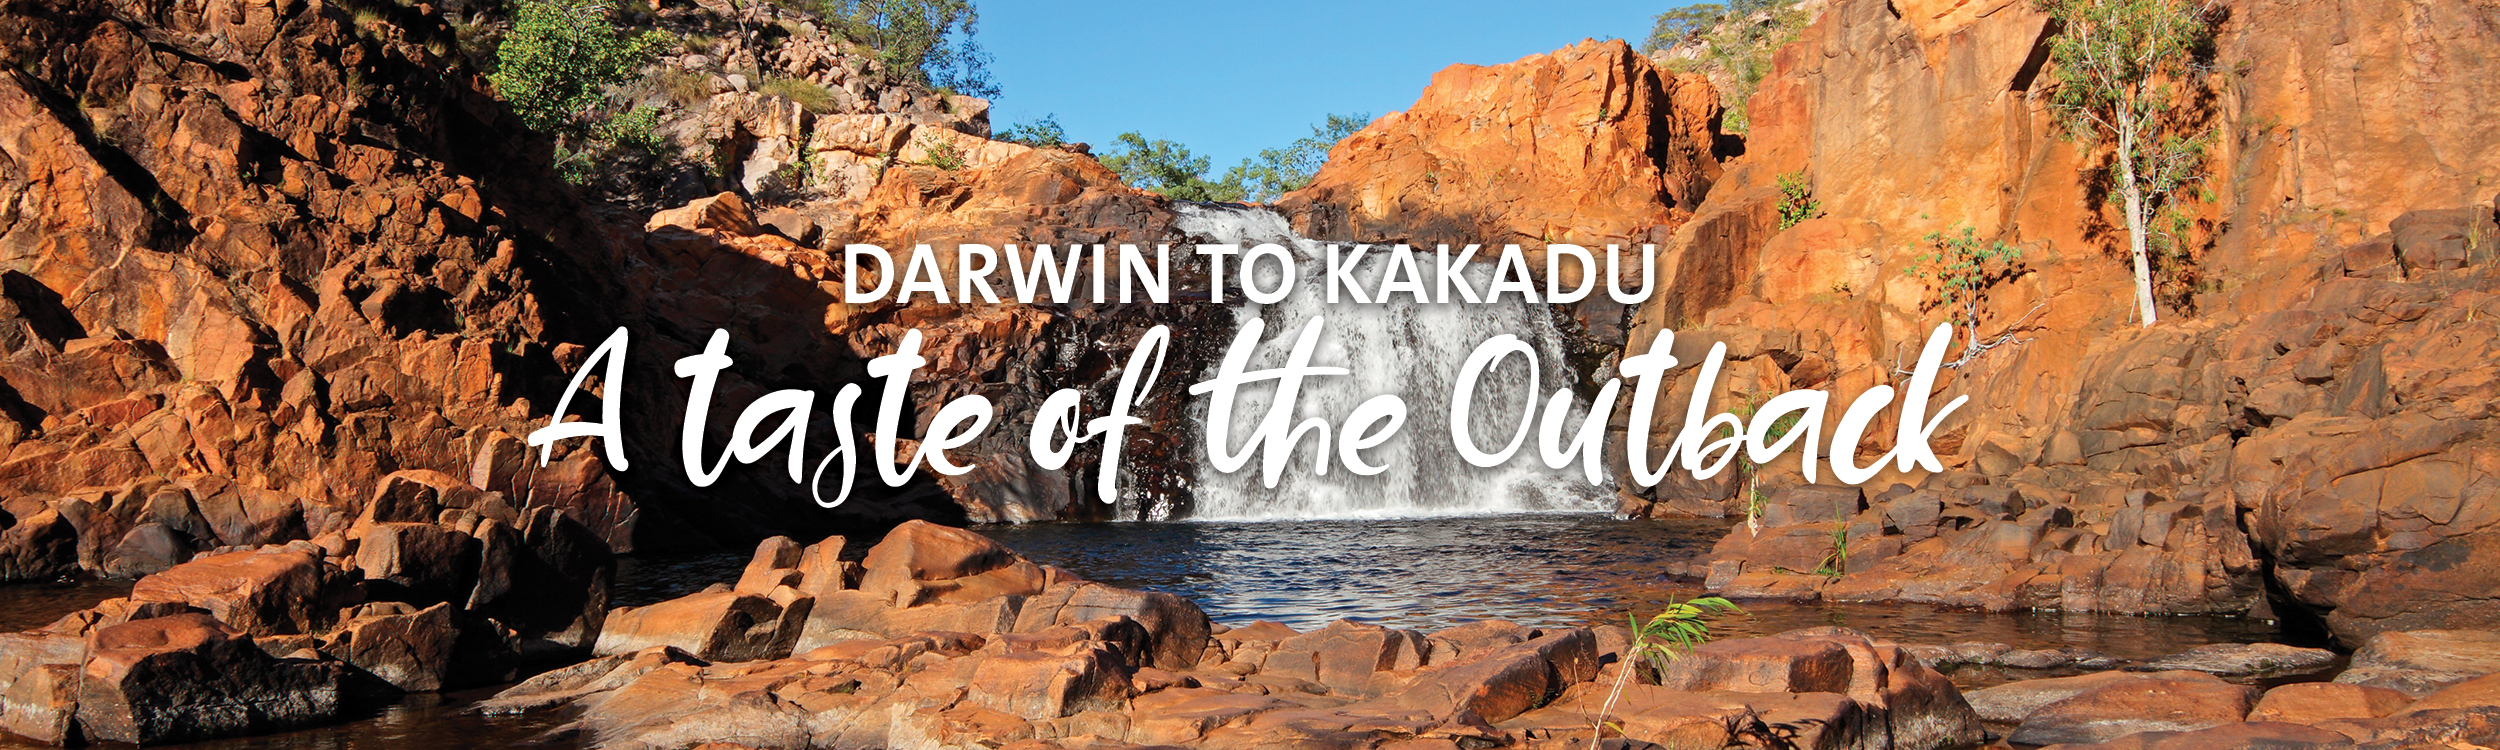 Darwin to Kakadu Roadtrip